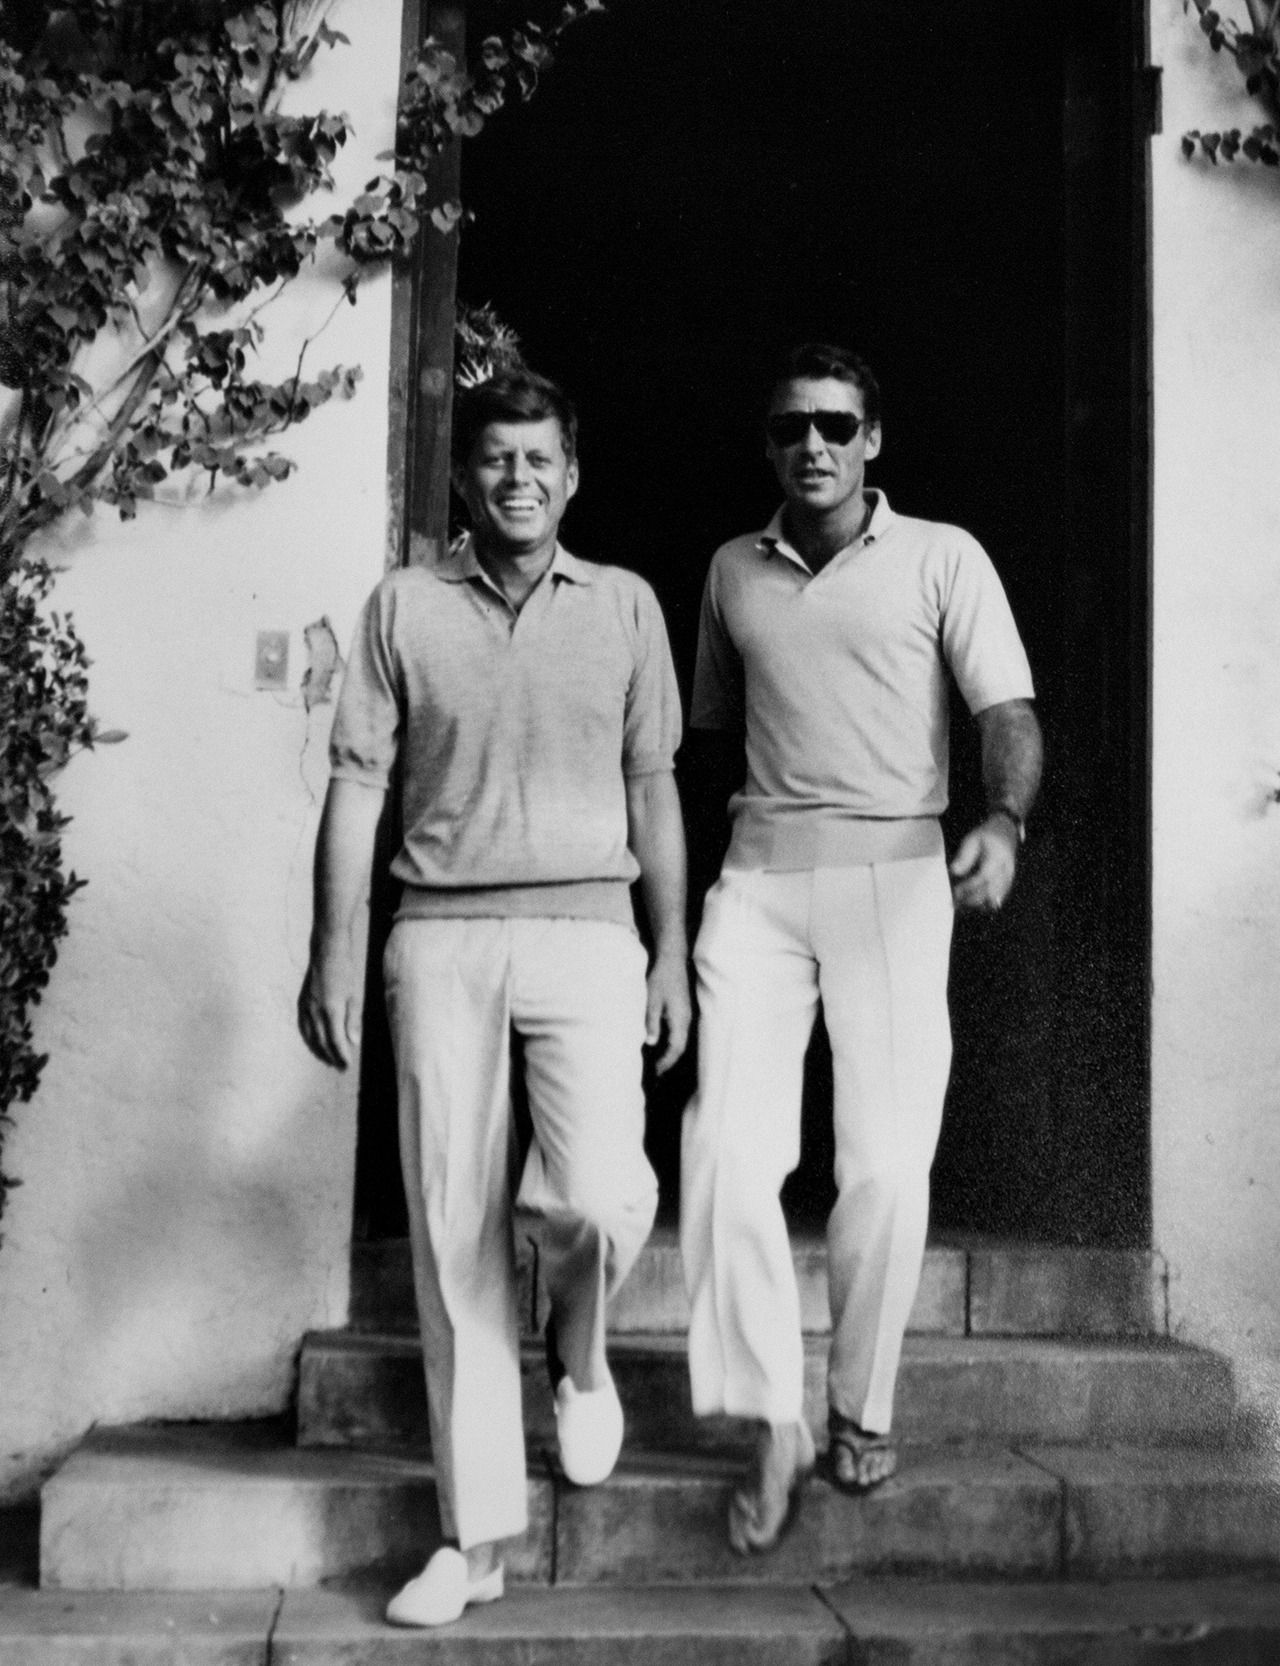 4a6484778d9d8 Bad Boys. John F. Kennedy and Peter Lawford.